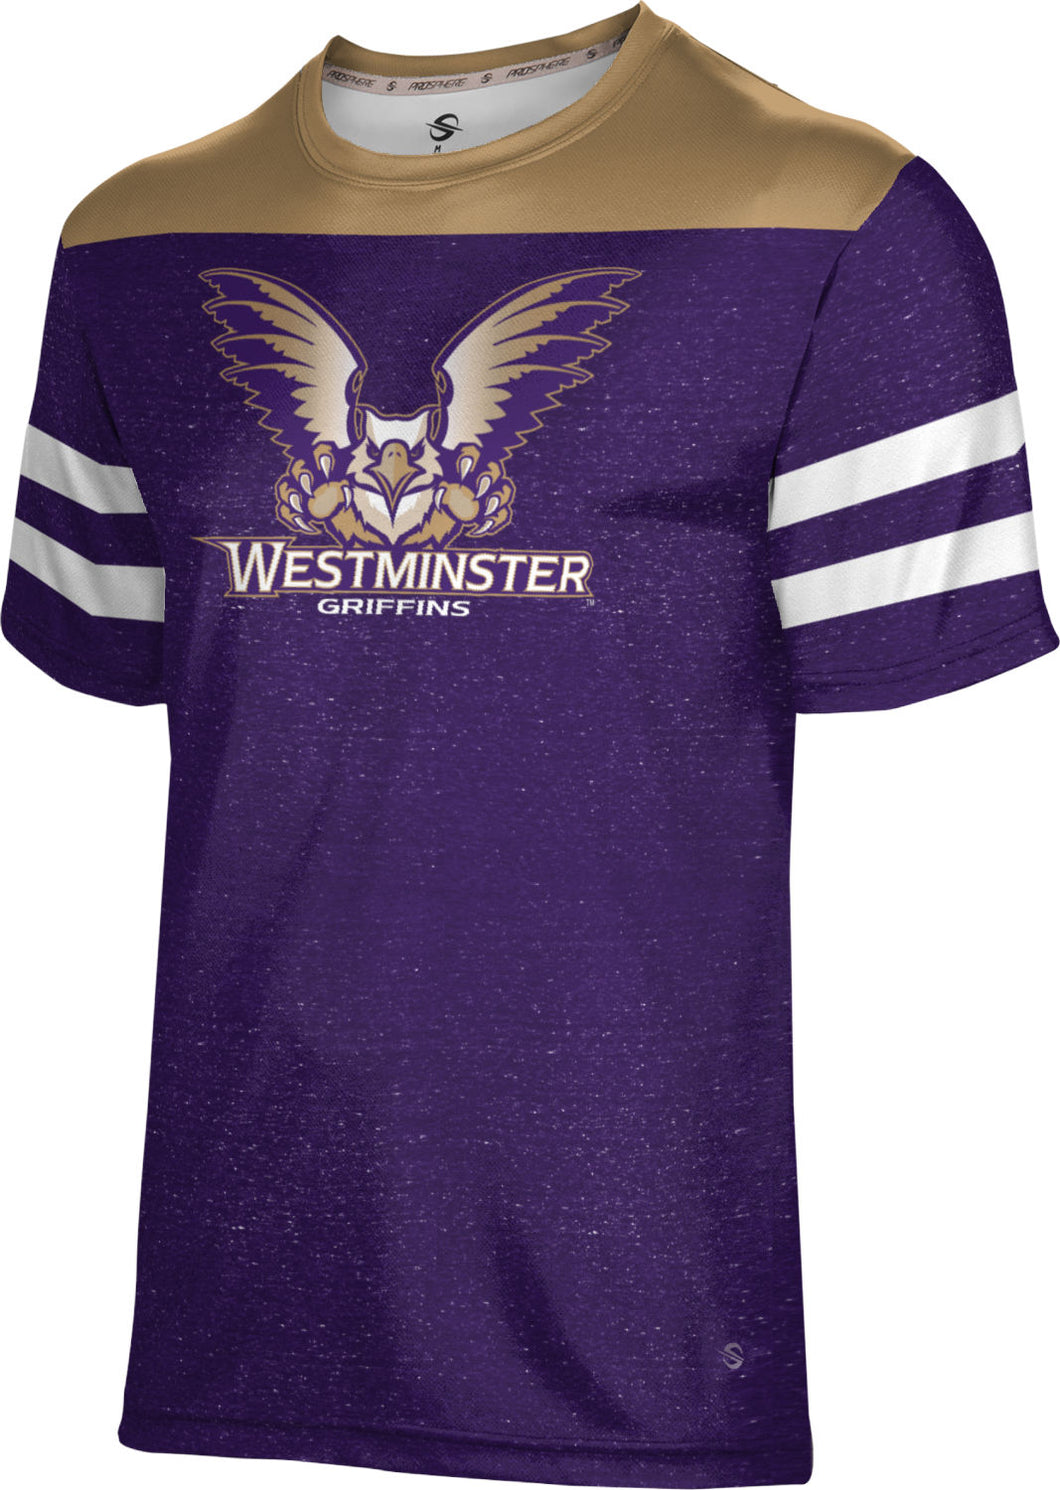 Westminster College: Boys' T-shirt - Game Day